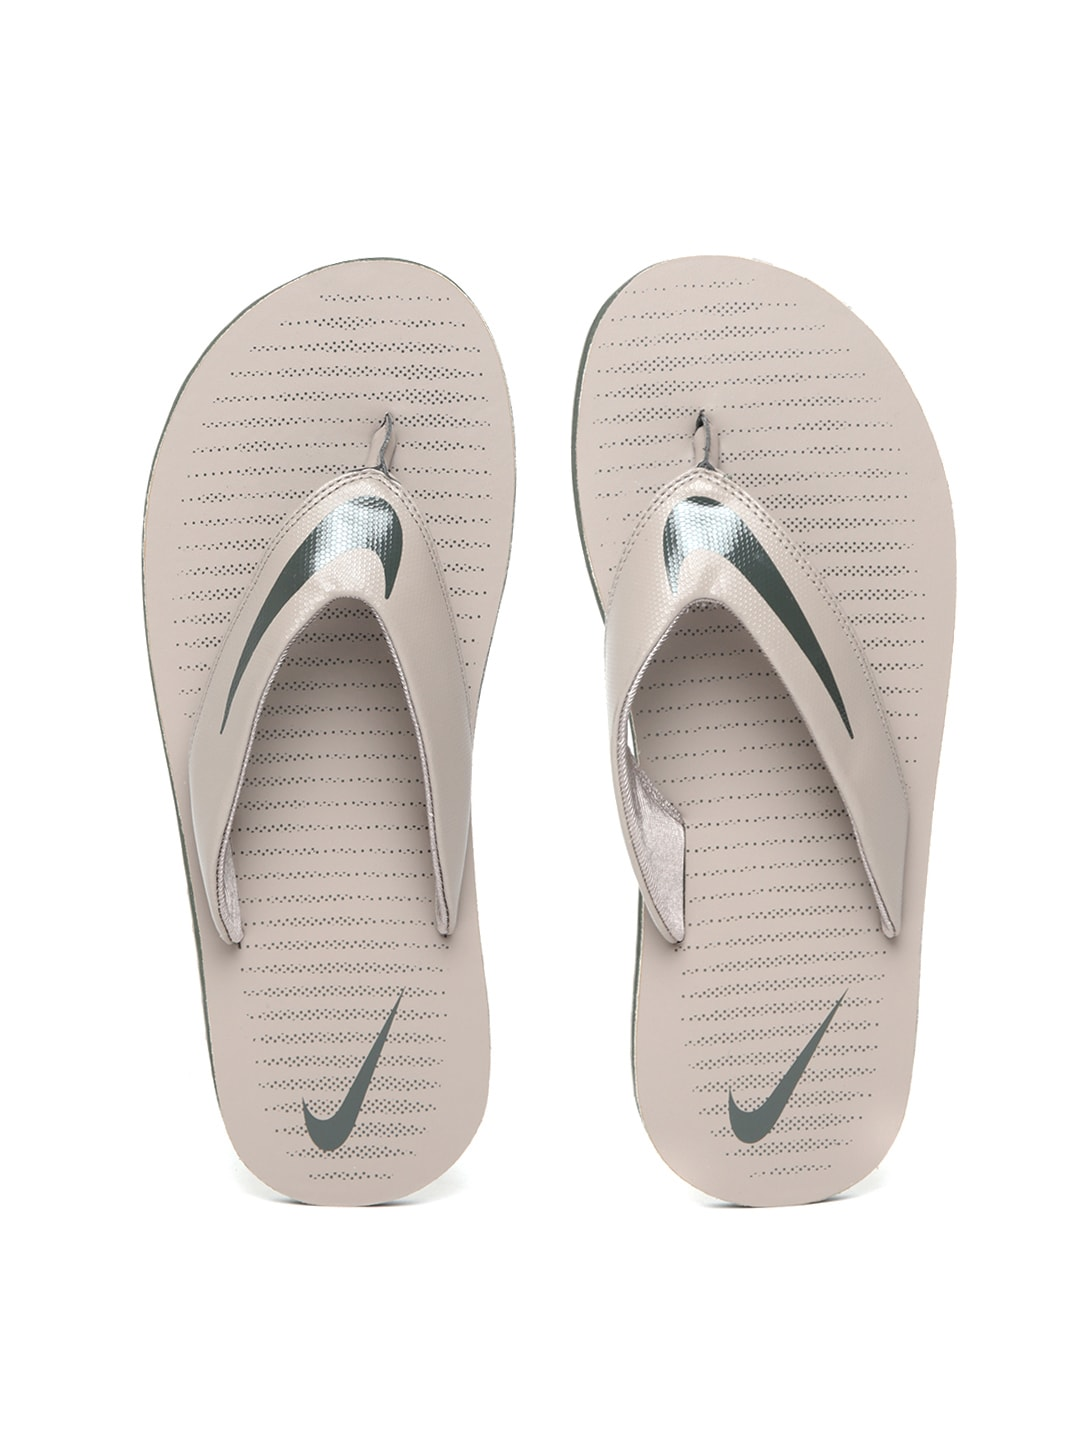 watch 740e9 e8264 Nike Flip Flops Headband Tracksuits Deodorant - Buy Nike Flip Flops  Headband Tracksuits Deodorant online in India